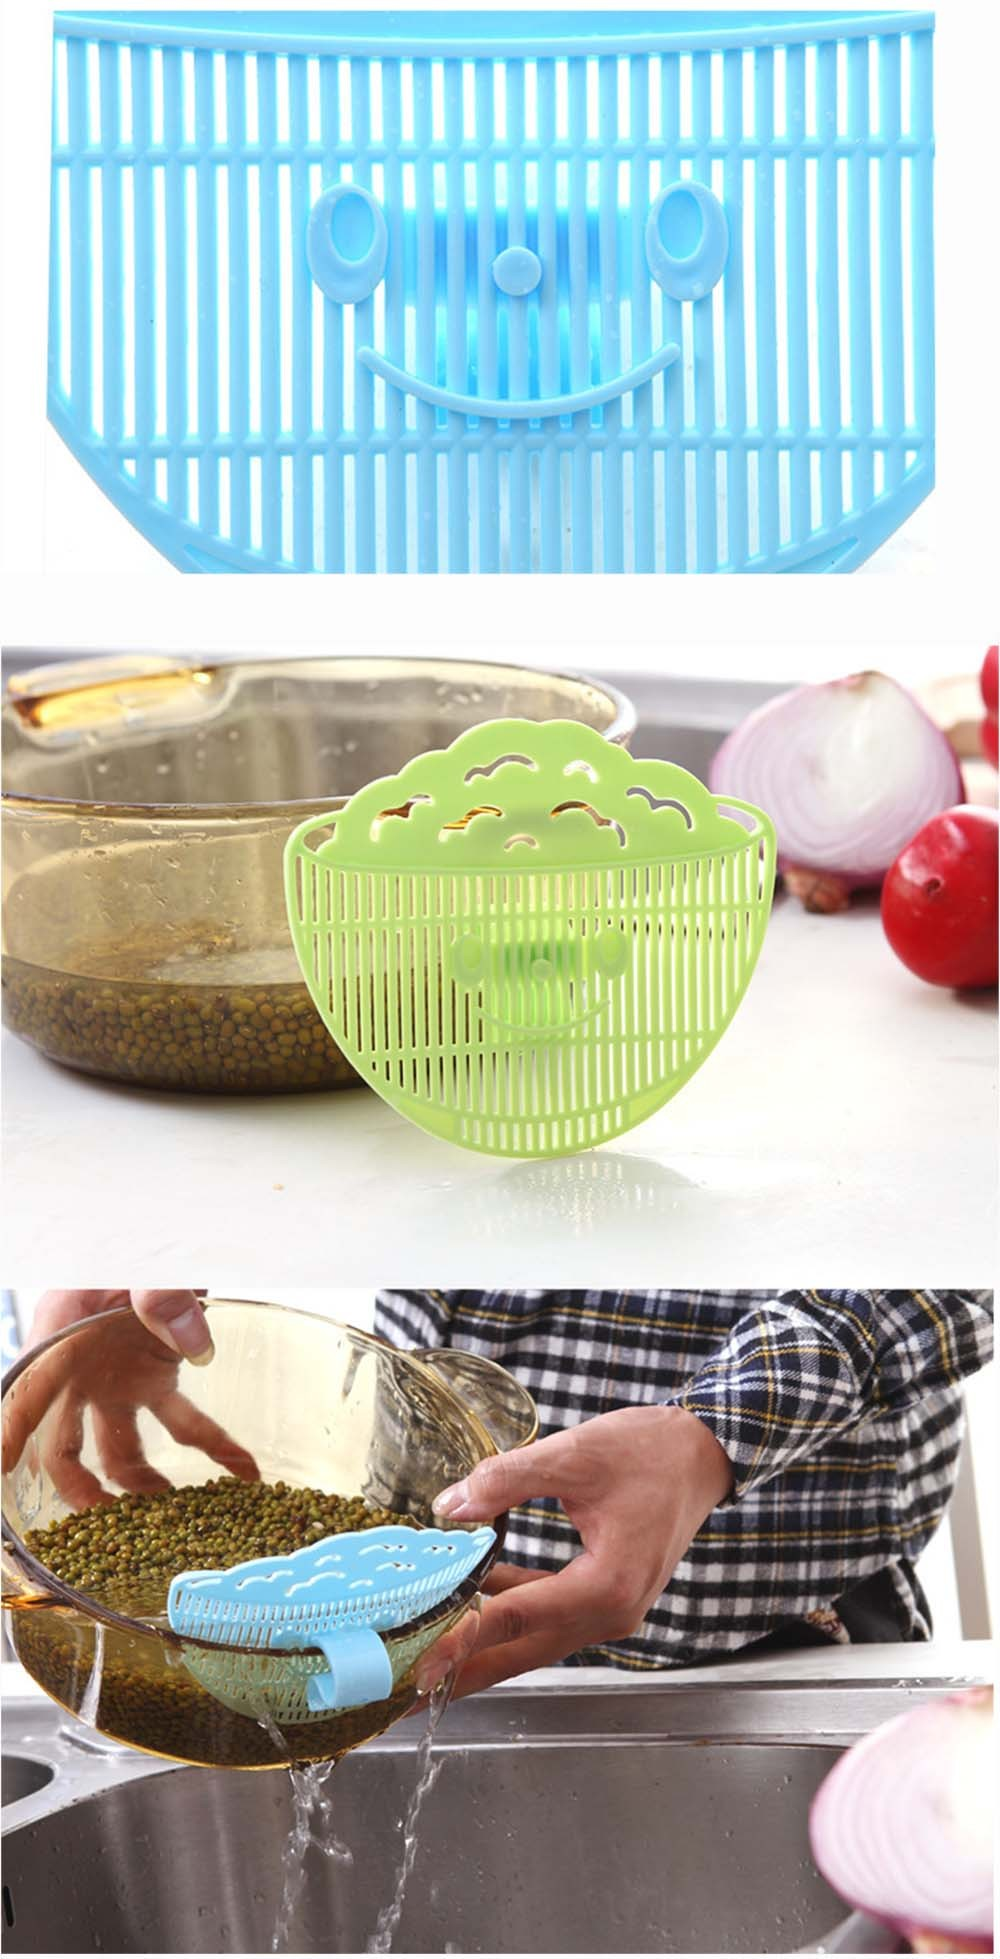 Plastic-Wash-Rice-Is-Rice-Washing-Not-To-Hurt-The-Hand-Clean-Wash-Rice-Sieve-Manual-Smile-Can-Clip-Type-Manual-Kitchen-Cooking-Tools-KC1080 (7)